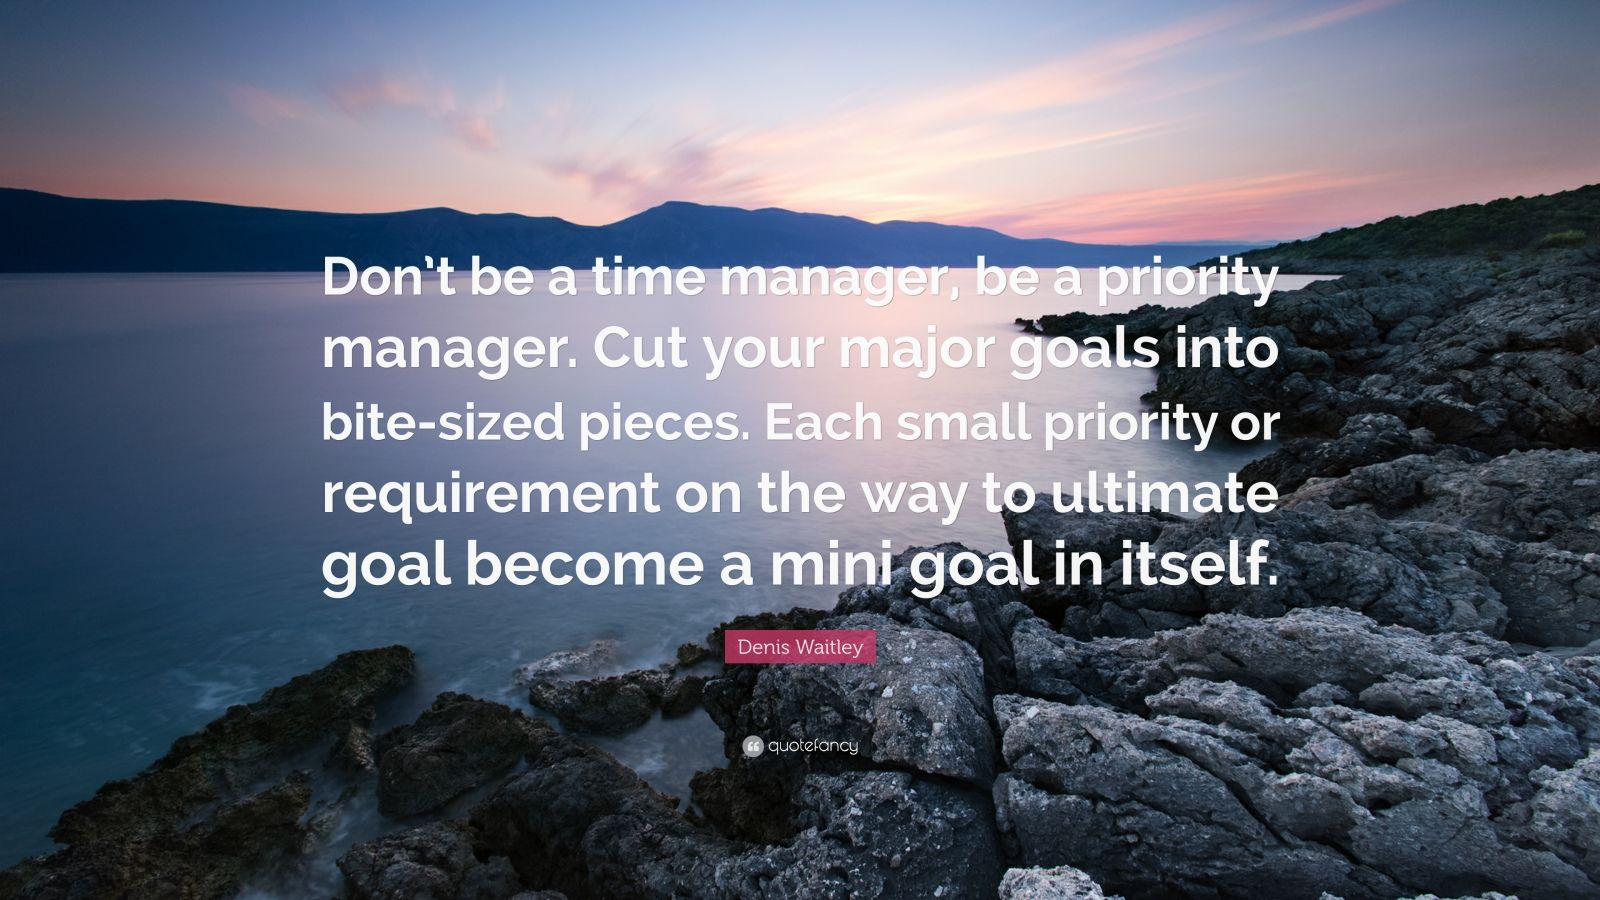 "Denis Waitley Quote: ""Don't be a time manager, be a priority manager. Cut your major goals into bite-sized pieces. Each small priority or requirement on the way to ultimate goal become a mini goal in itself."""